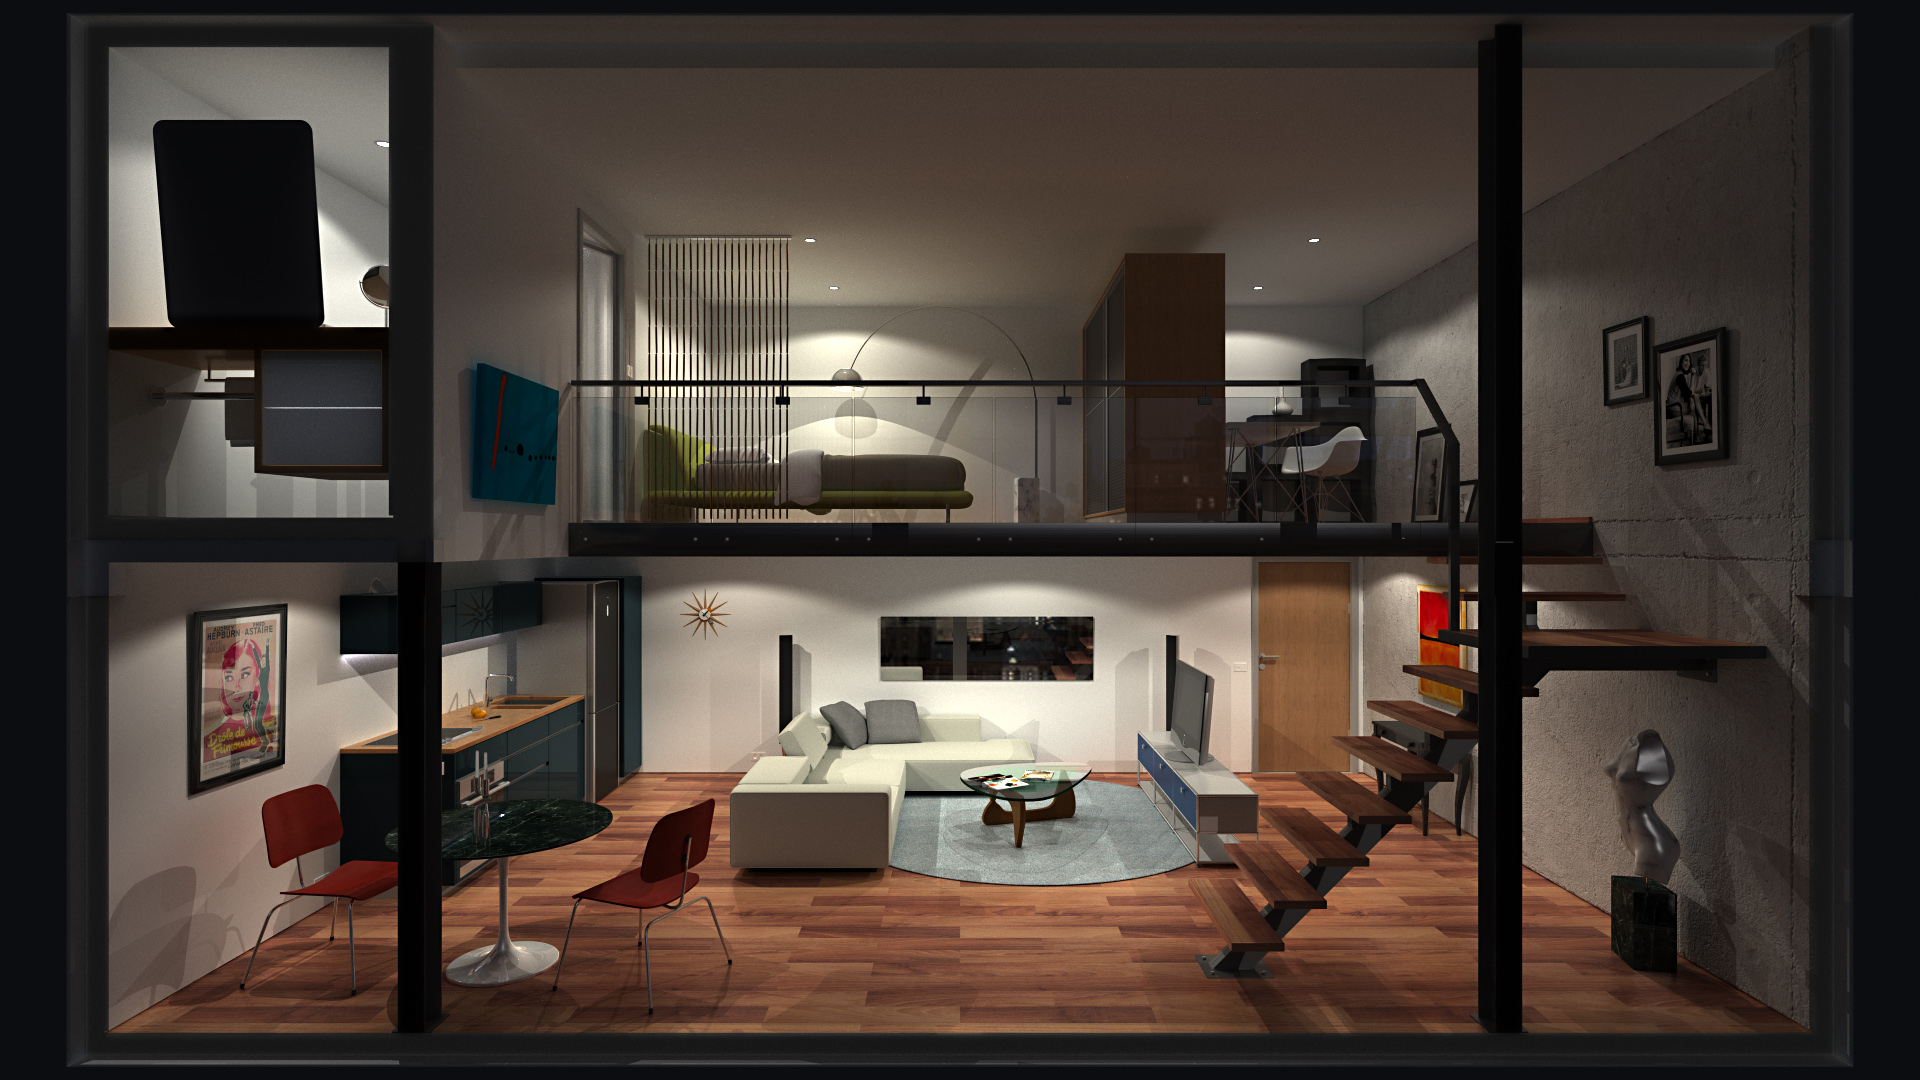 Loft Apartment 0 - HD, Night by richert on deviantART